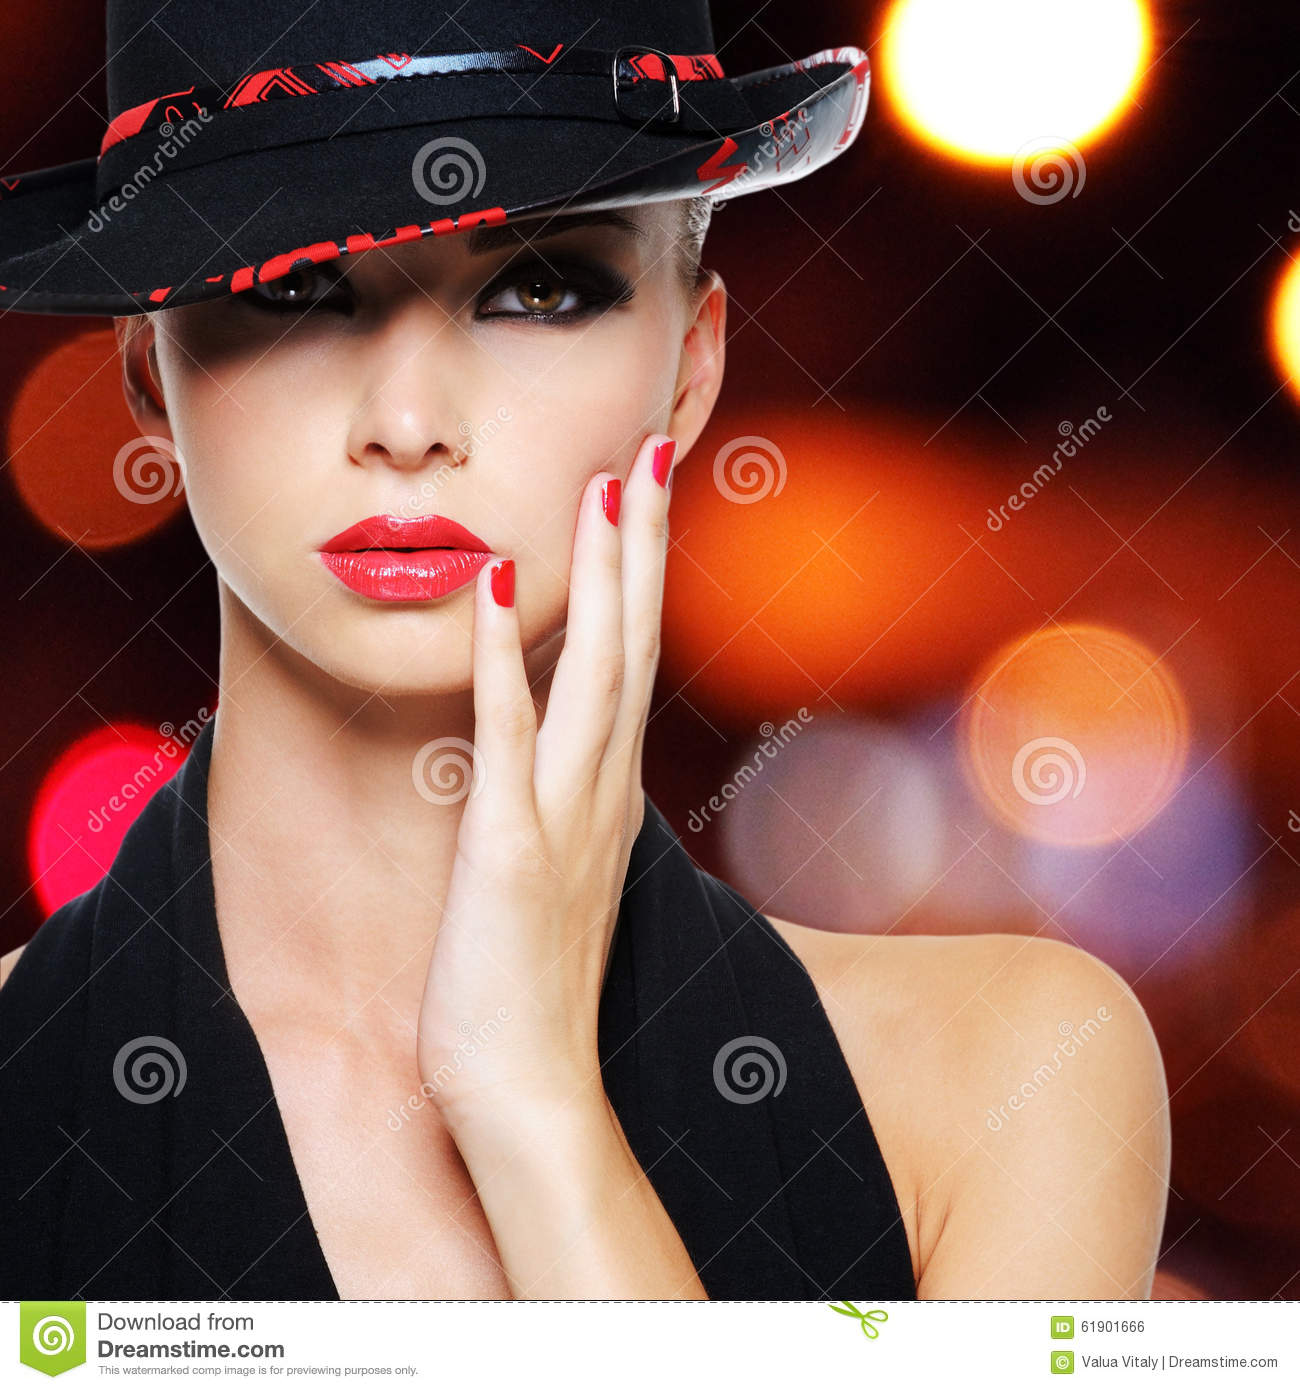 Glamour woman with beautiful red lips